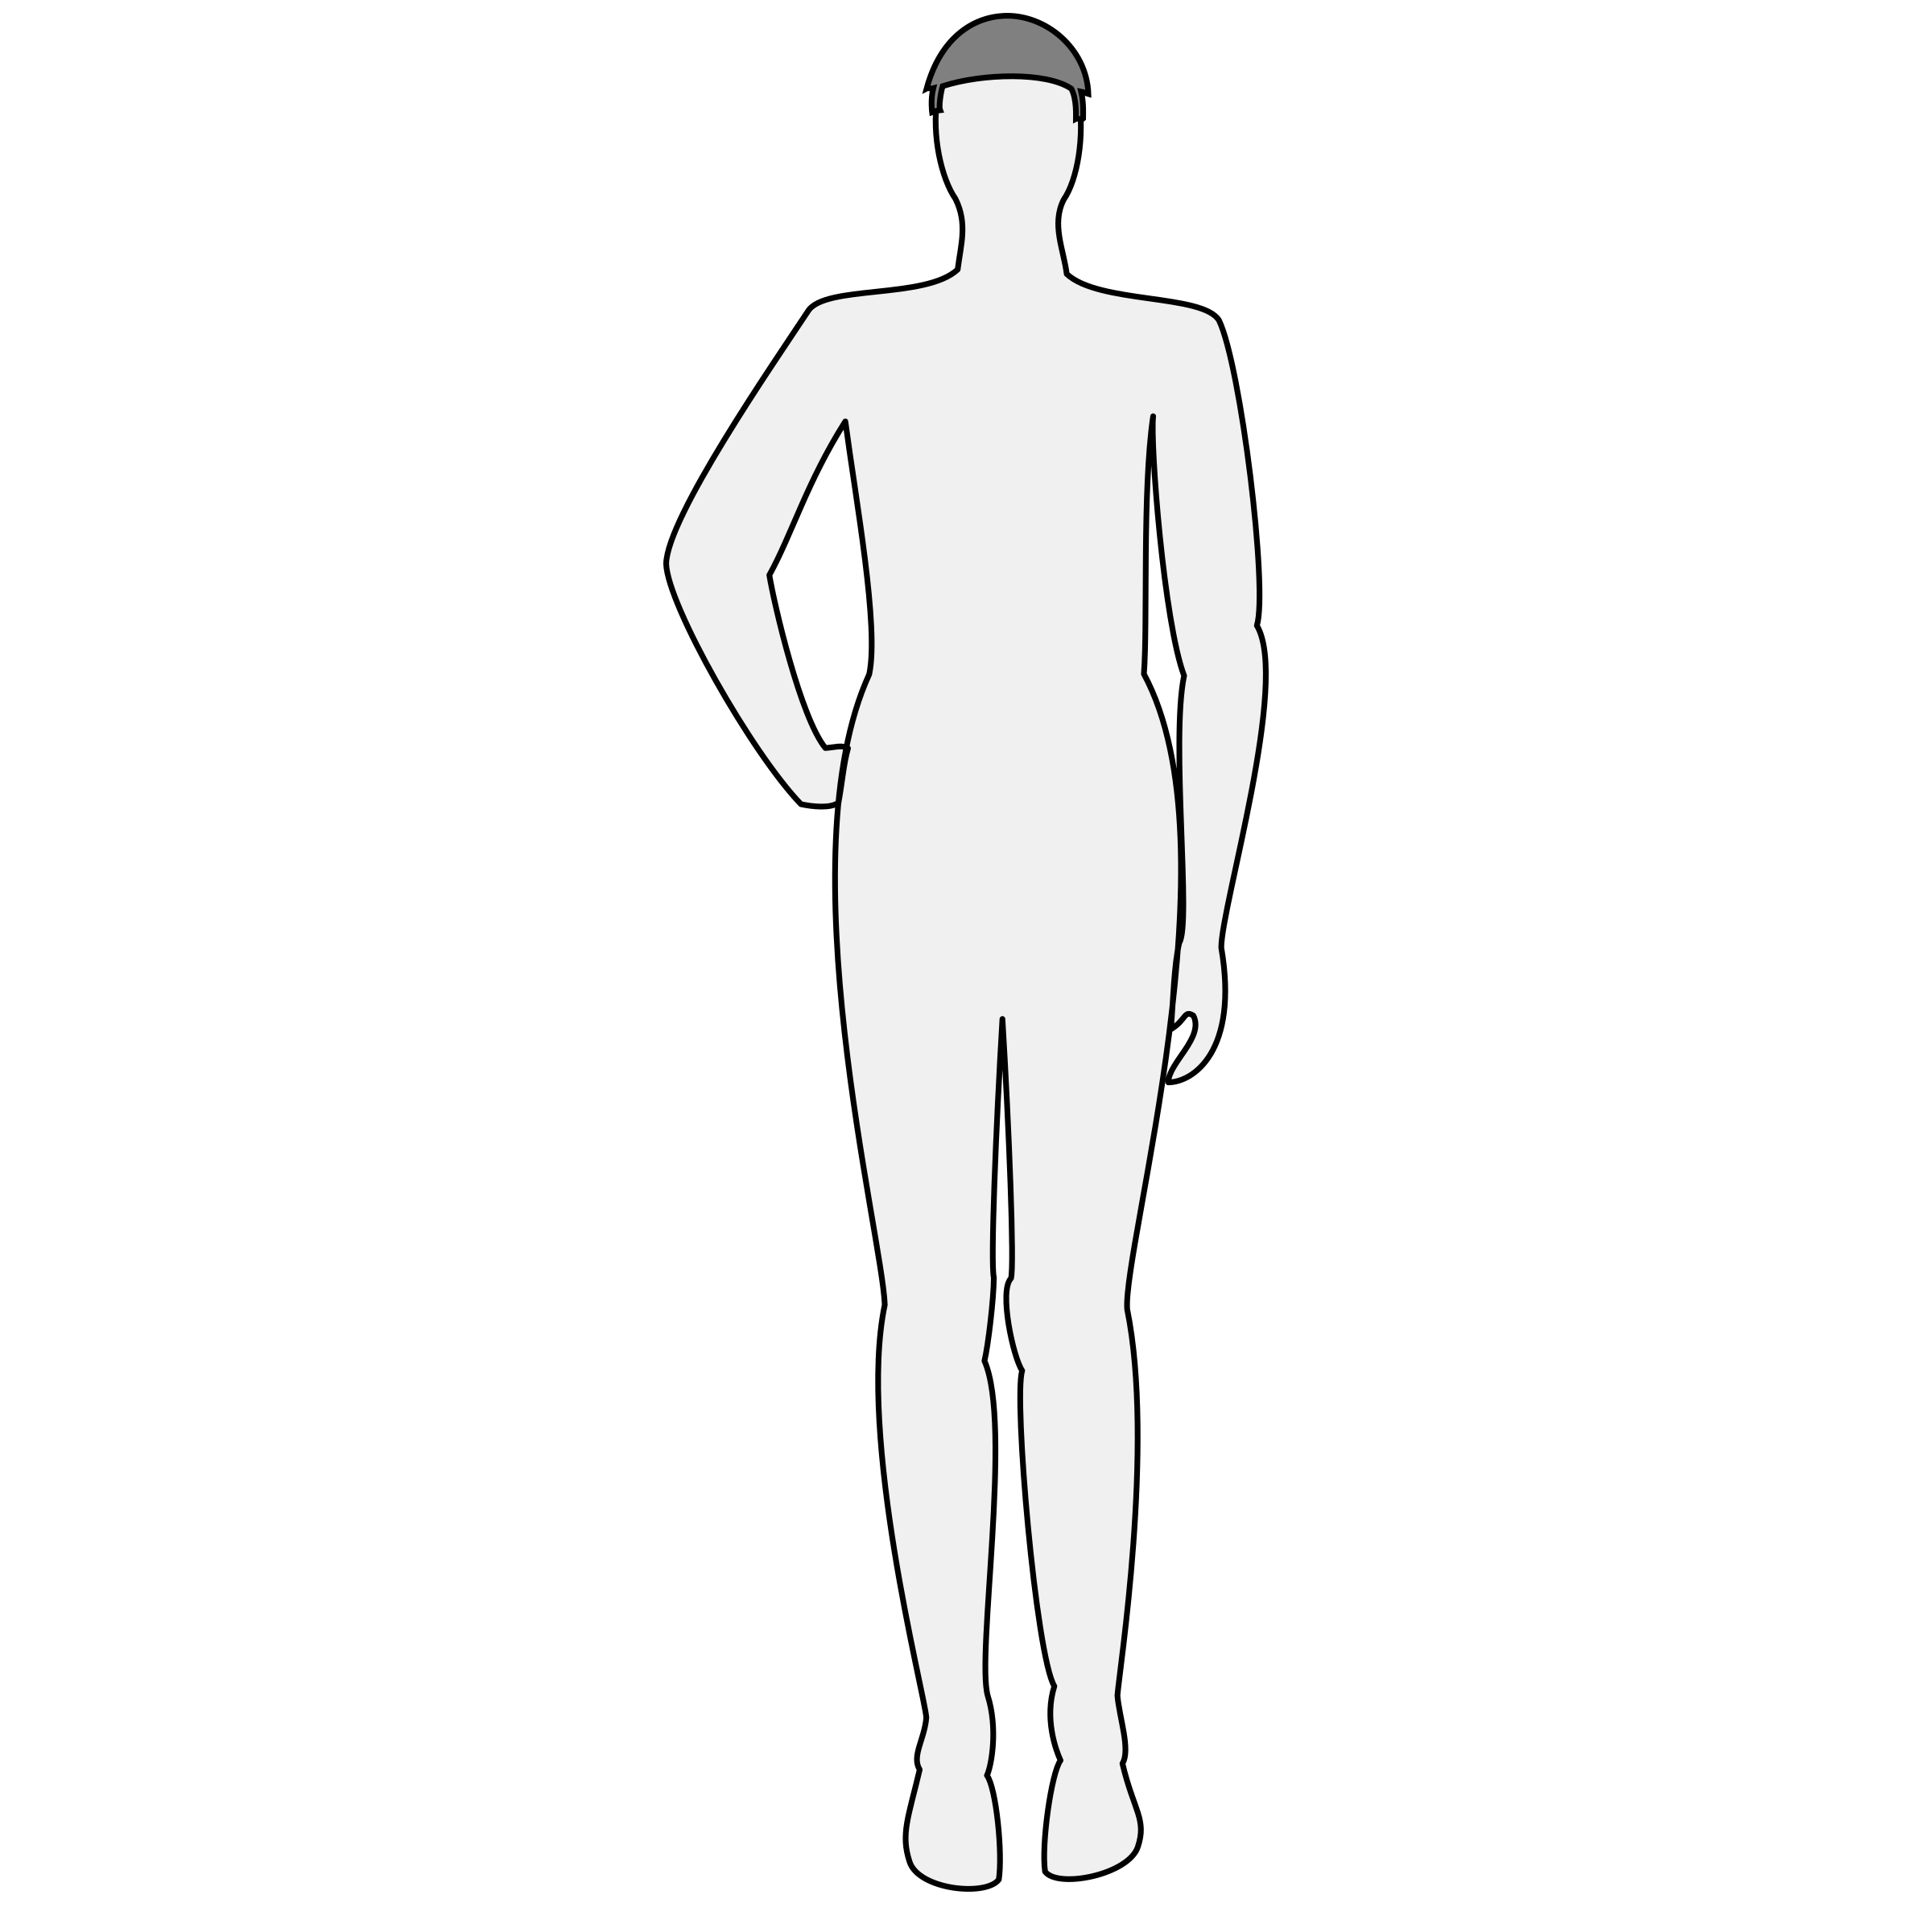 Male body silhouette - front by nicubunu